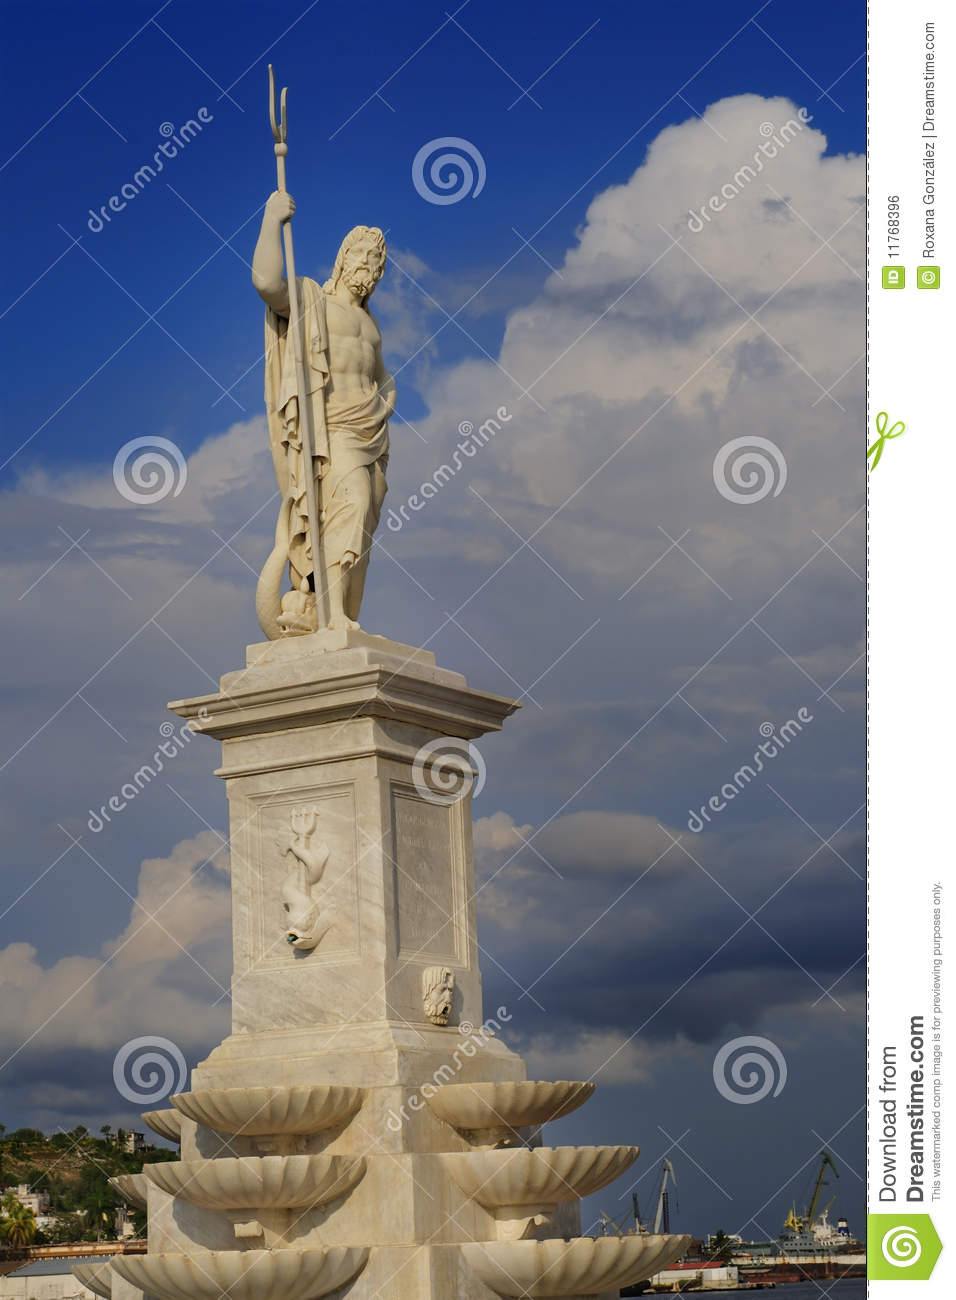 Statue of greek god poseidon at havana bay stock photo image 11768396 - Poseidon statue greece ...